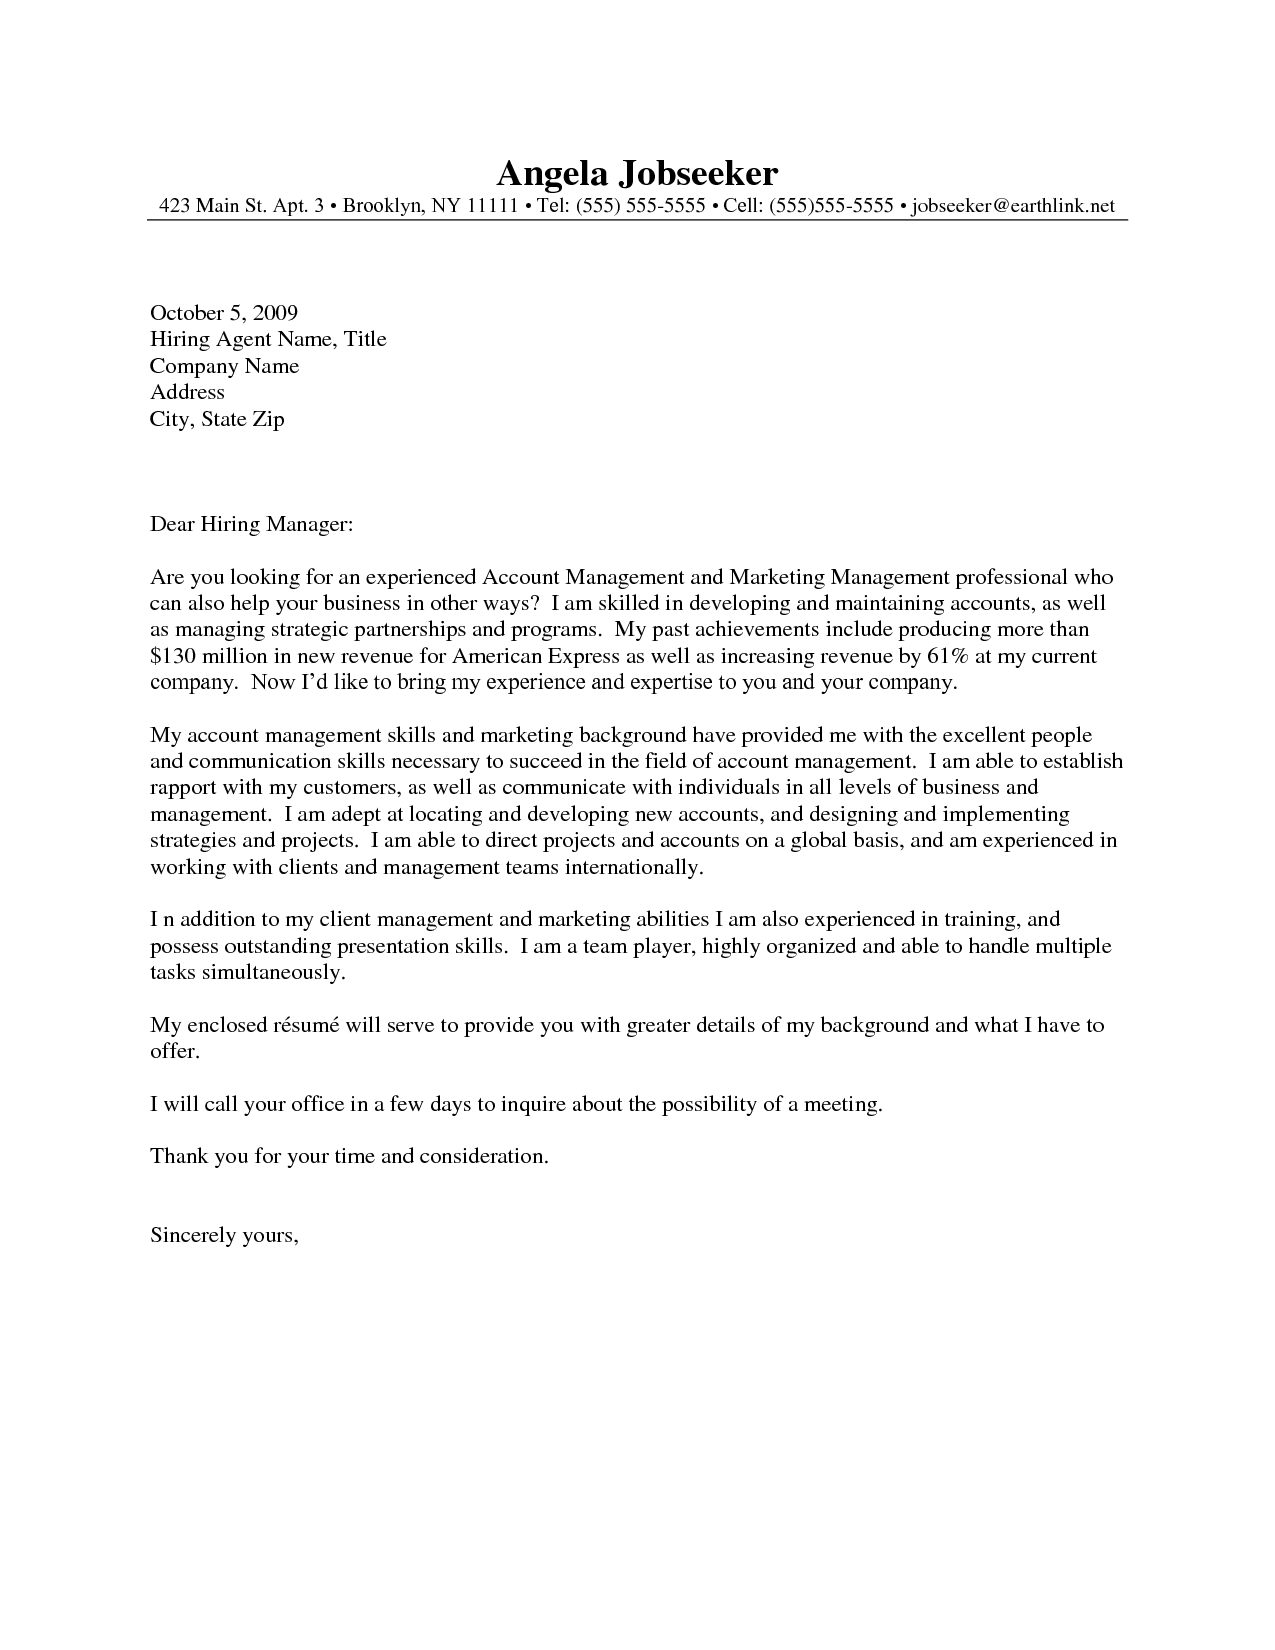 Cover Letter For Resume Cover Letter Guidesimple Cover Letter